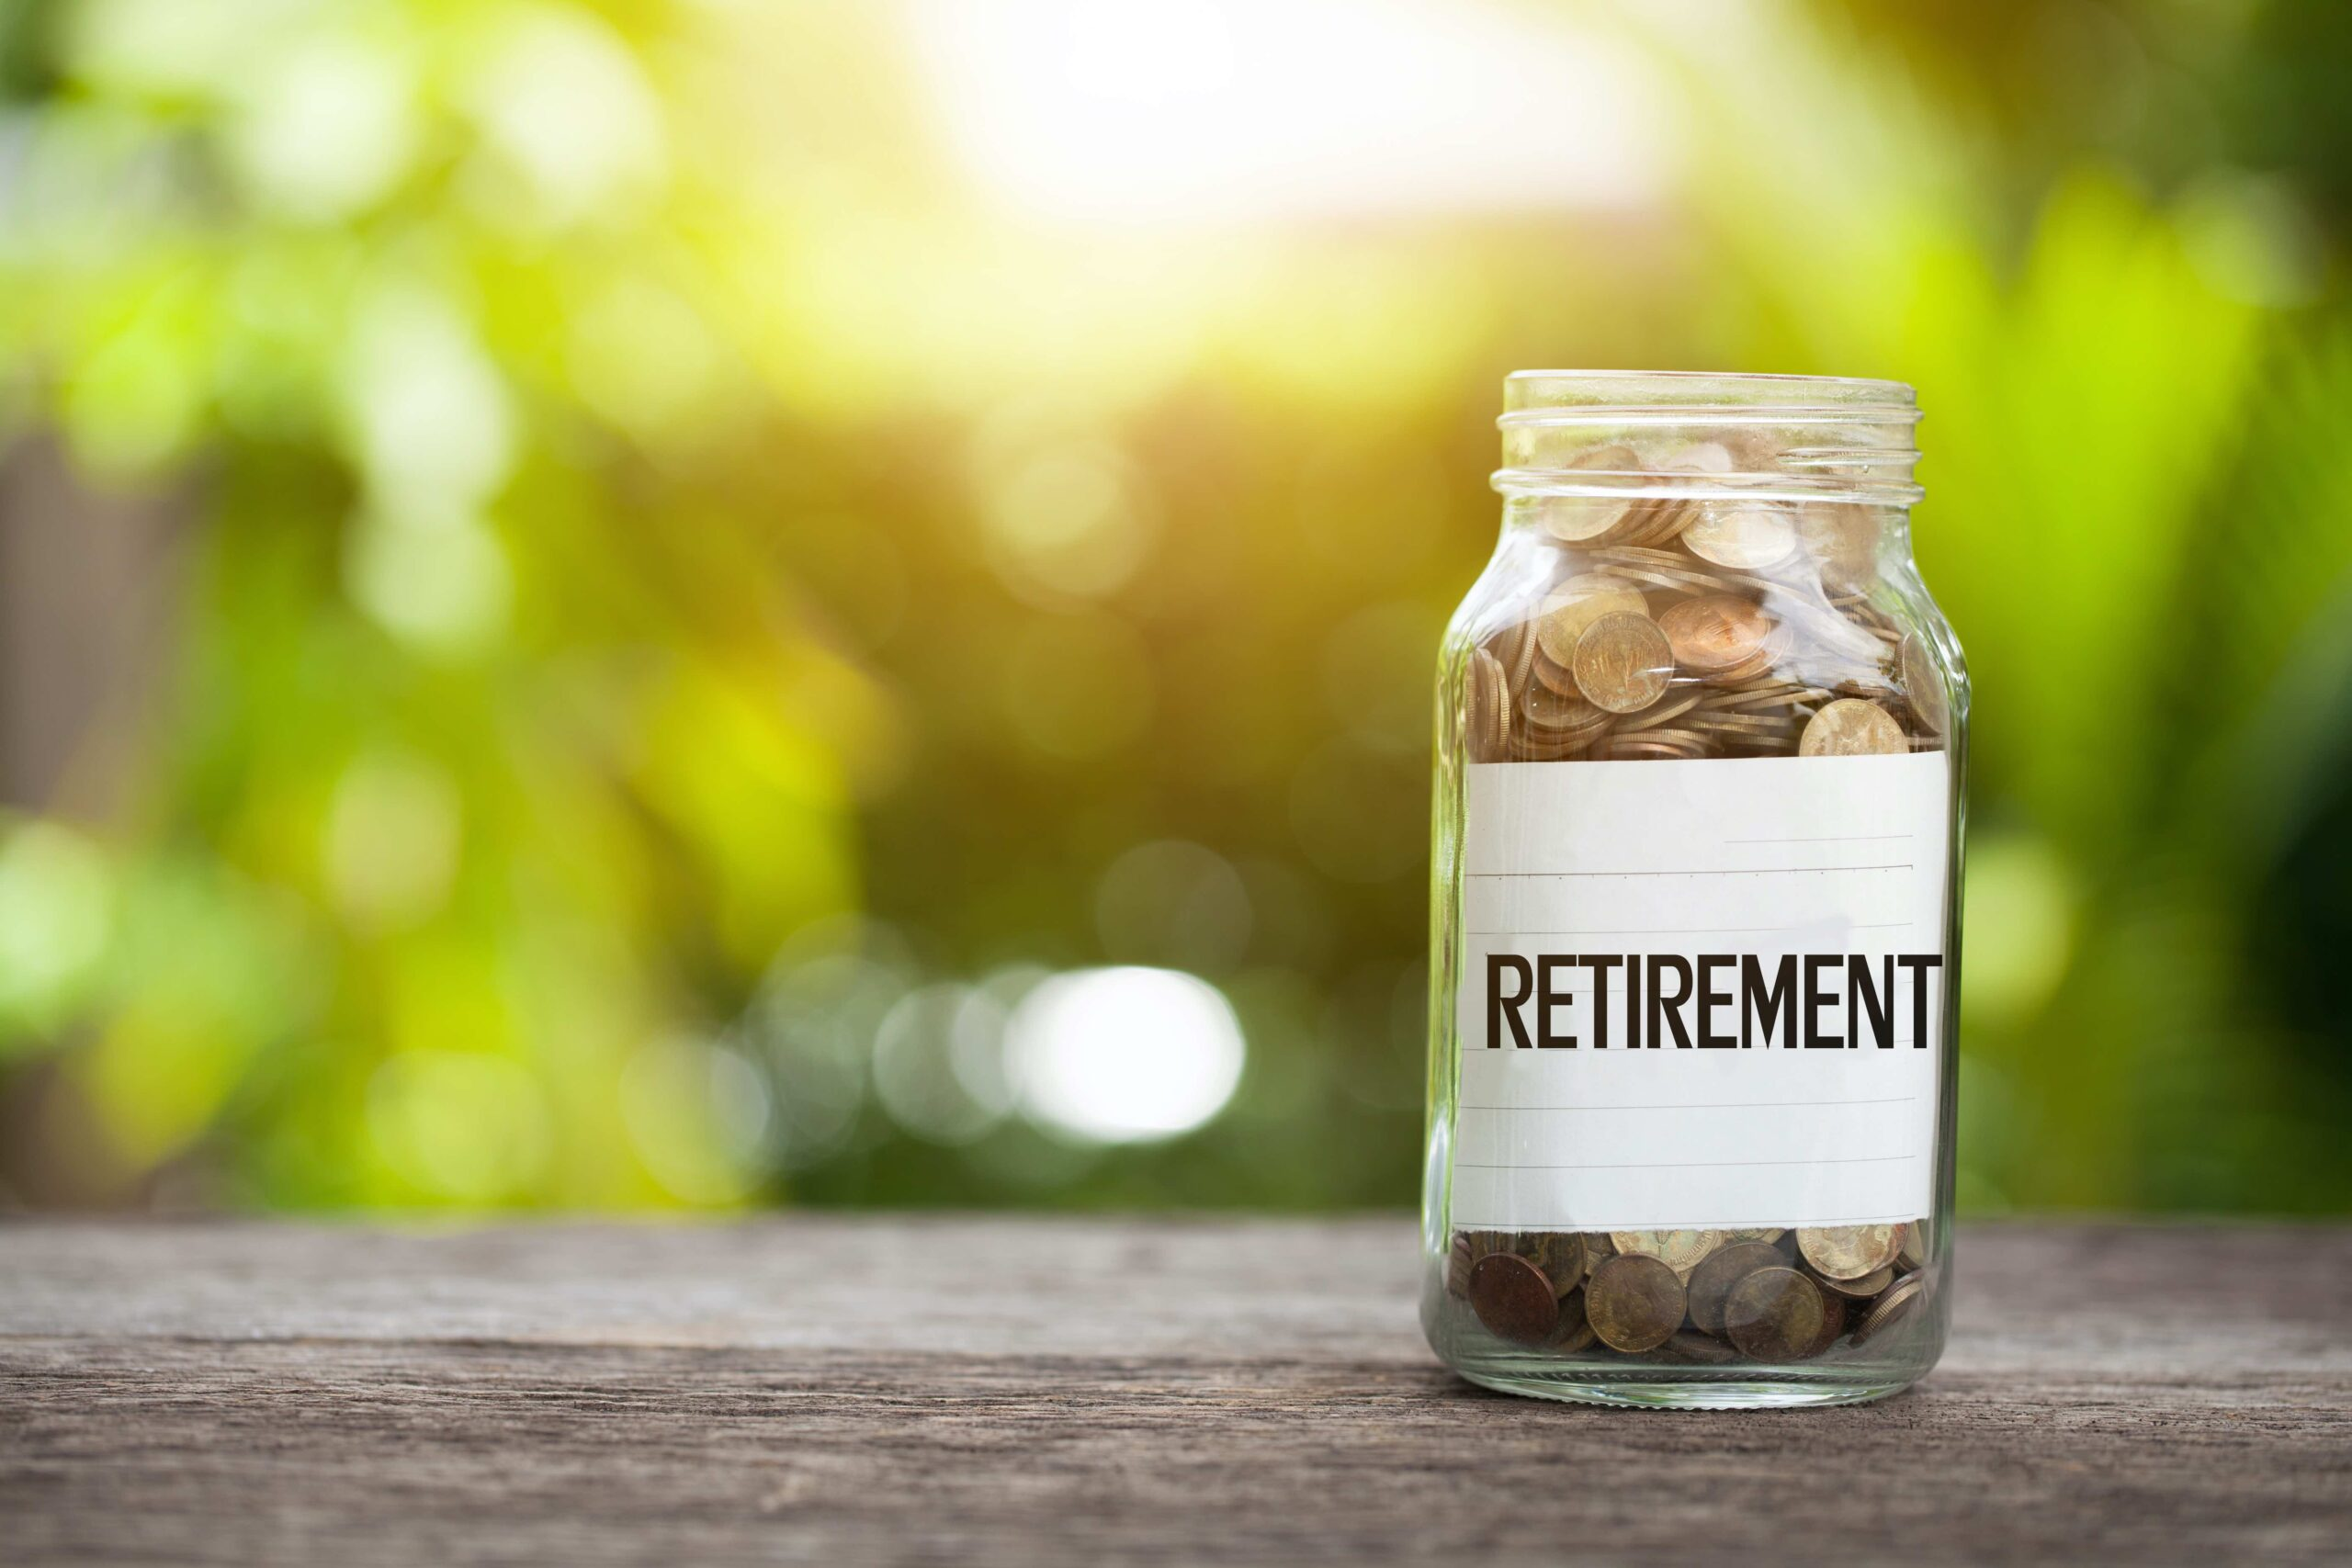 Is Retirement the only way I can get my Superannuation?